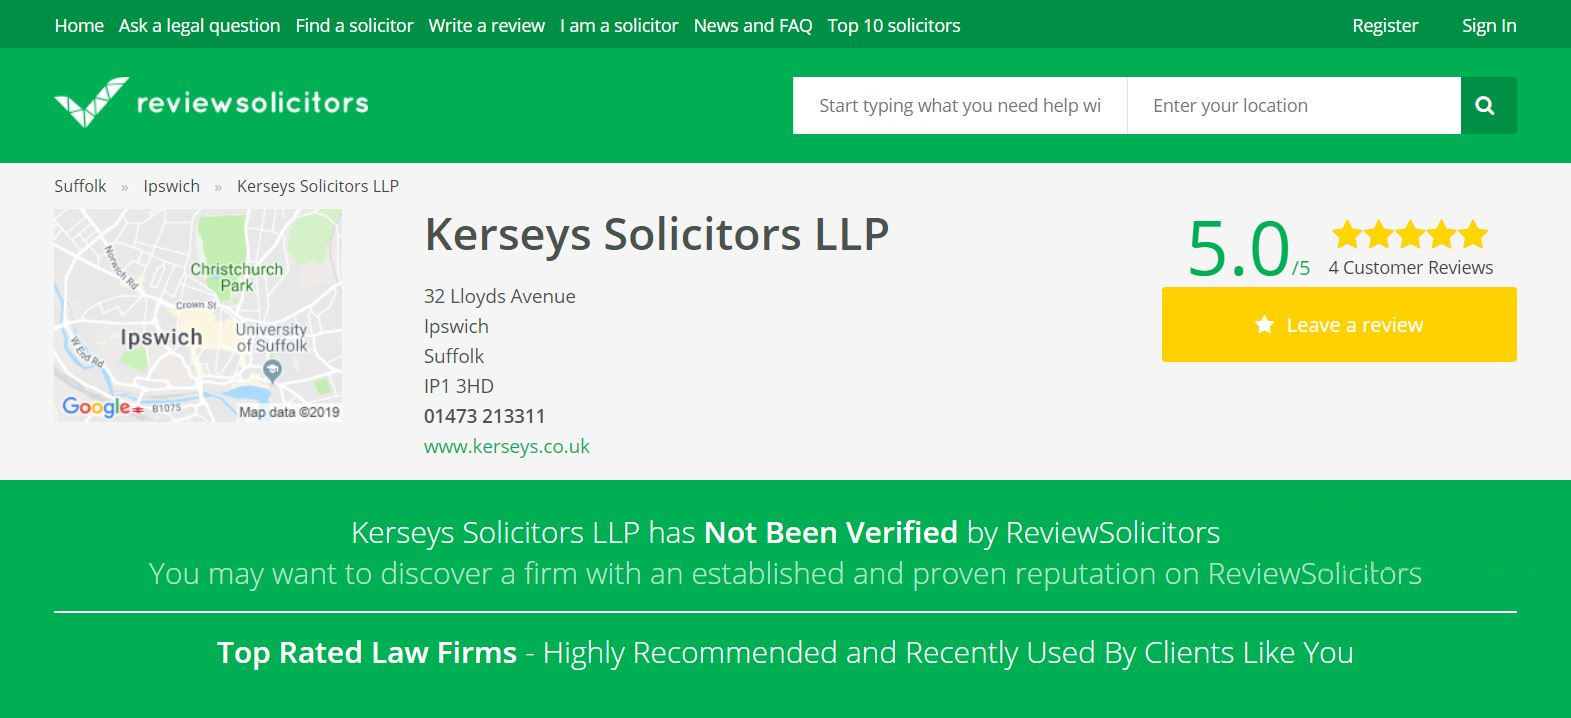 Review Solicitors Kerseys